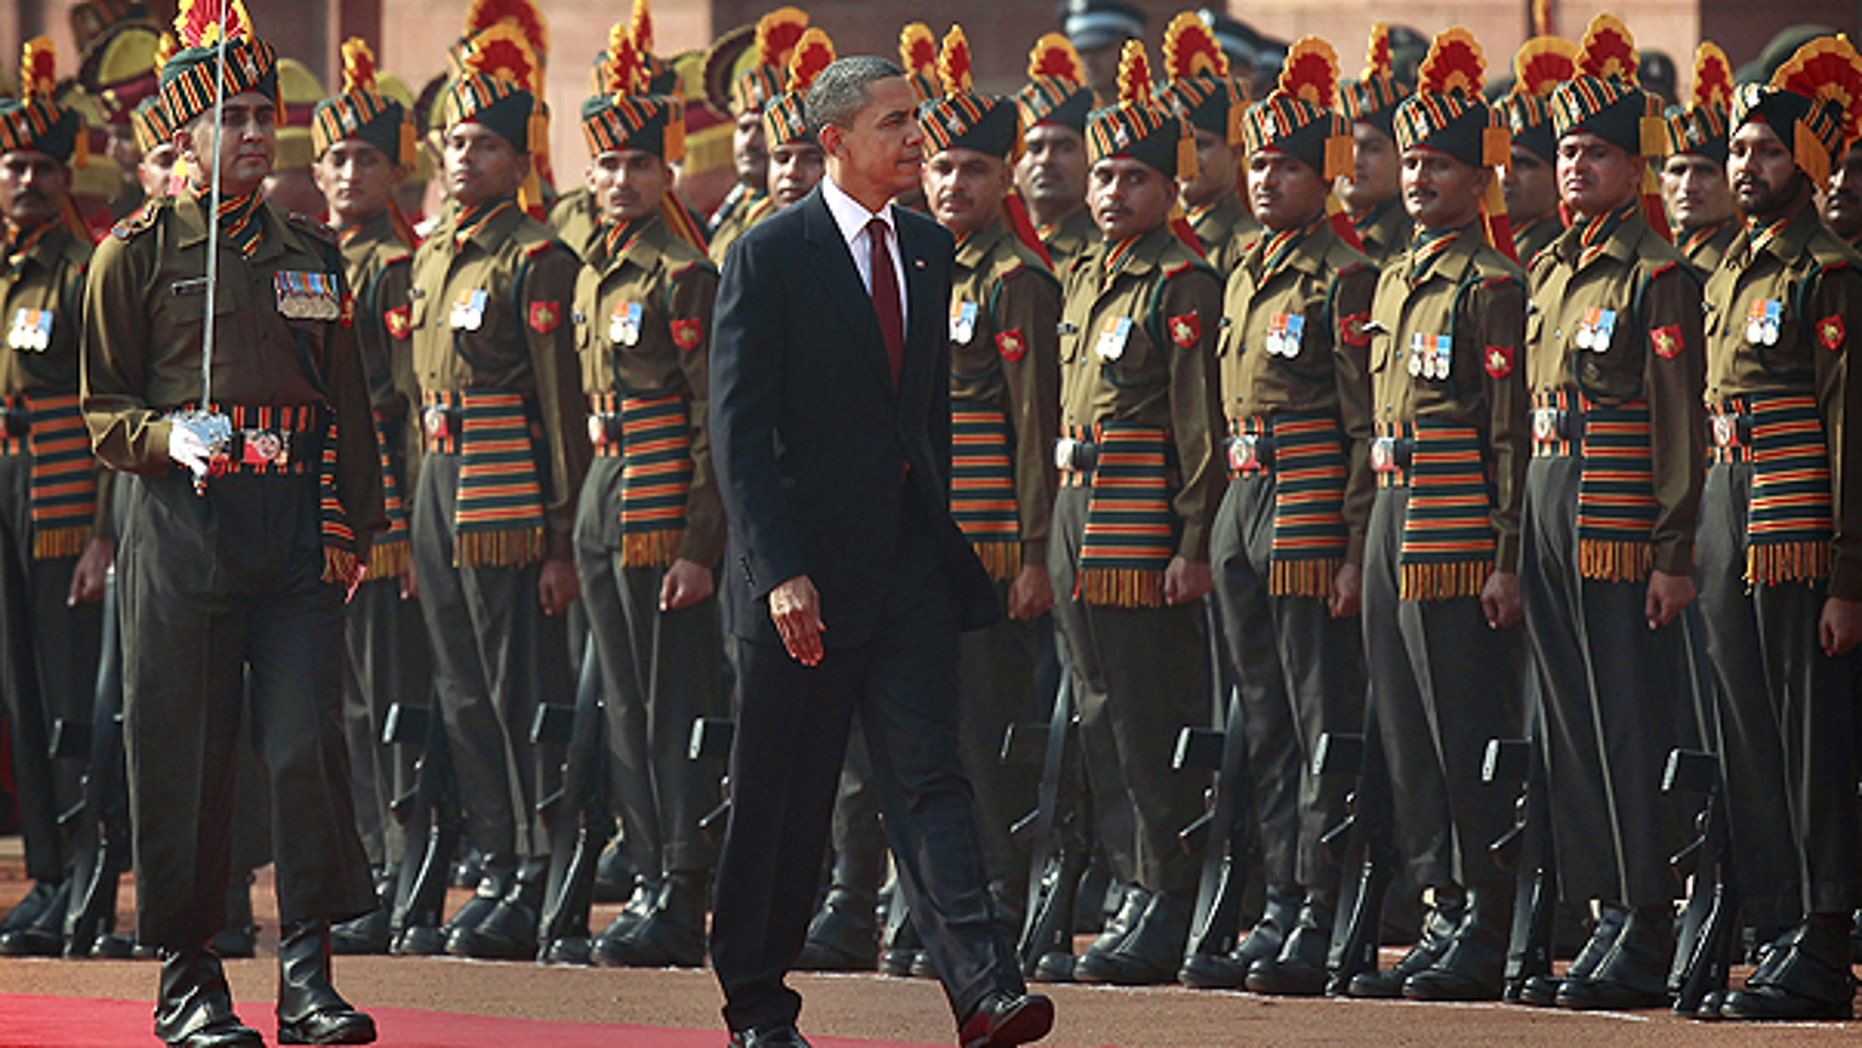 Nov. 8: President Obama inspects the guard of honor during a ceremonial reception at Rashtrapati Bhavan, the Presidential Palace, in New Delhi, India.